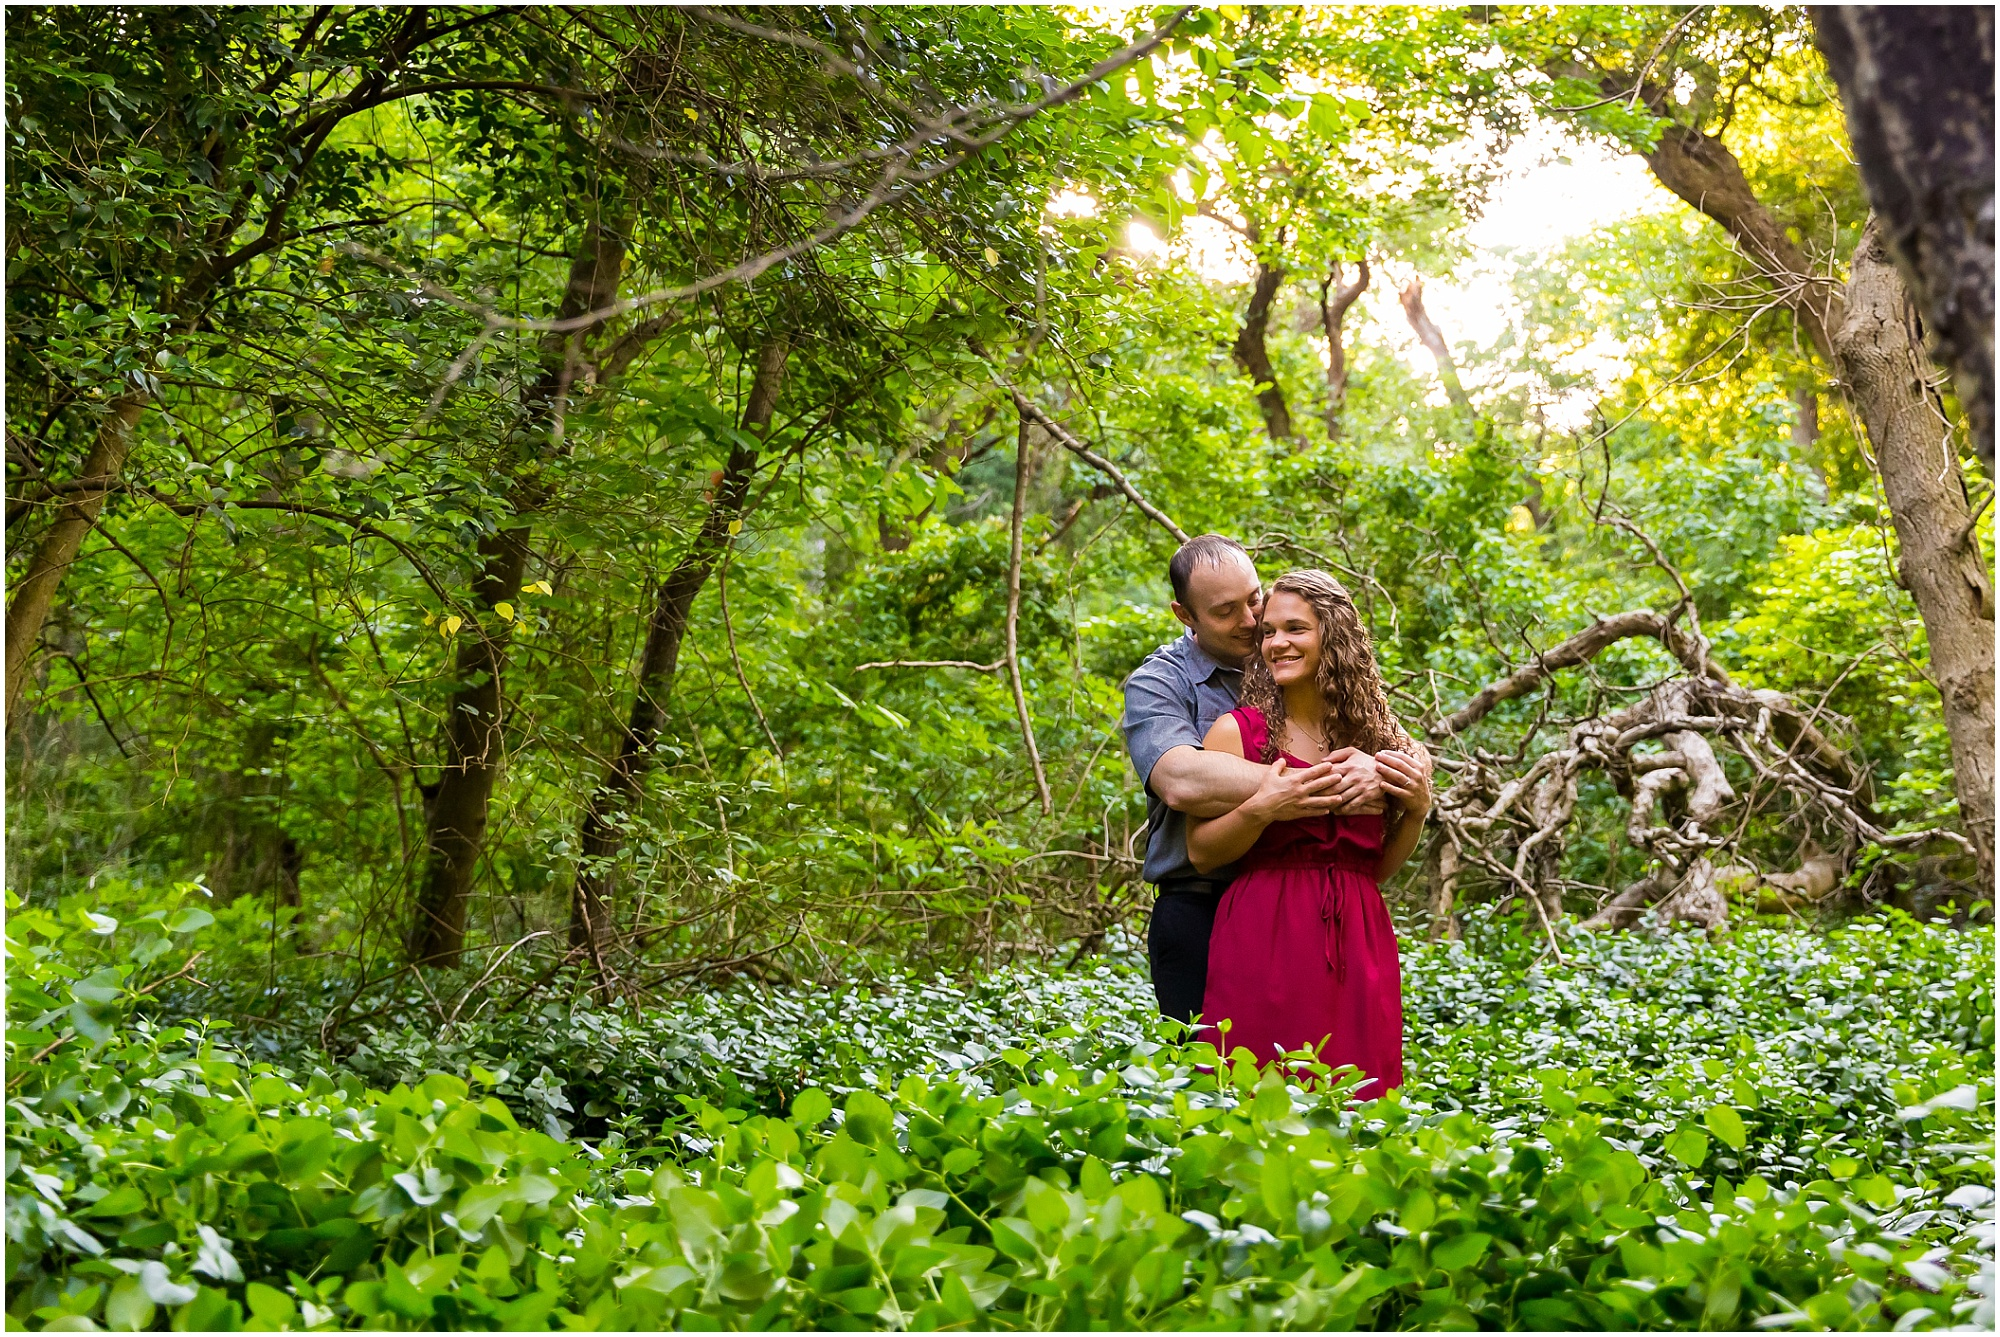 A man hugs his fiance from behind in a wooded trail inside Cameron Park in Waco, Texas - Jason & Melaina Photography - www.jasonandmelaina.com